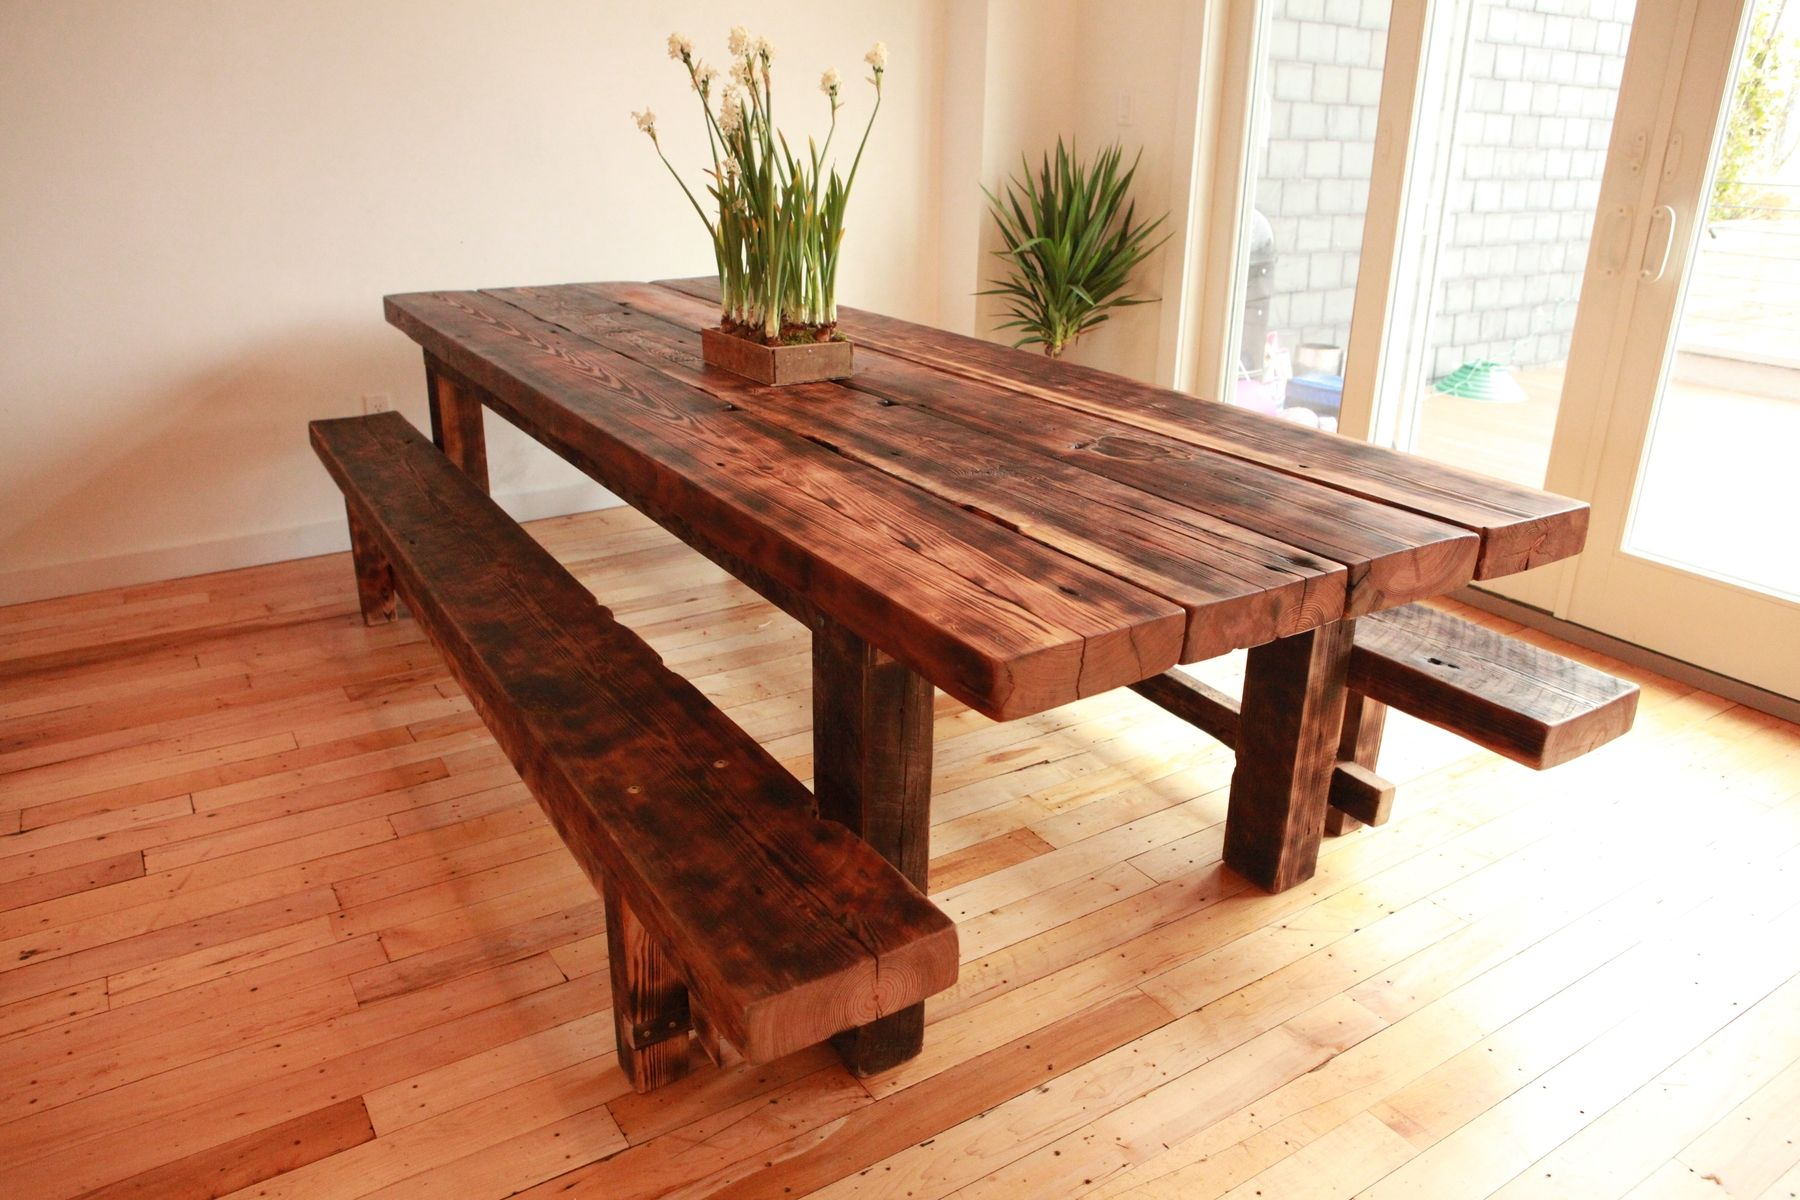 Custom Farmhouse Dining Table And Benches For Kitchensurfing Com Dining Table With Bench Table With Bench Seat Farmhouse Dining Table